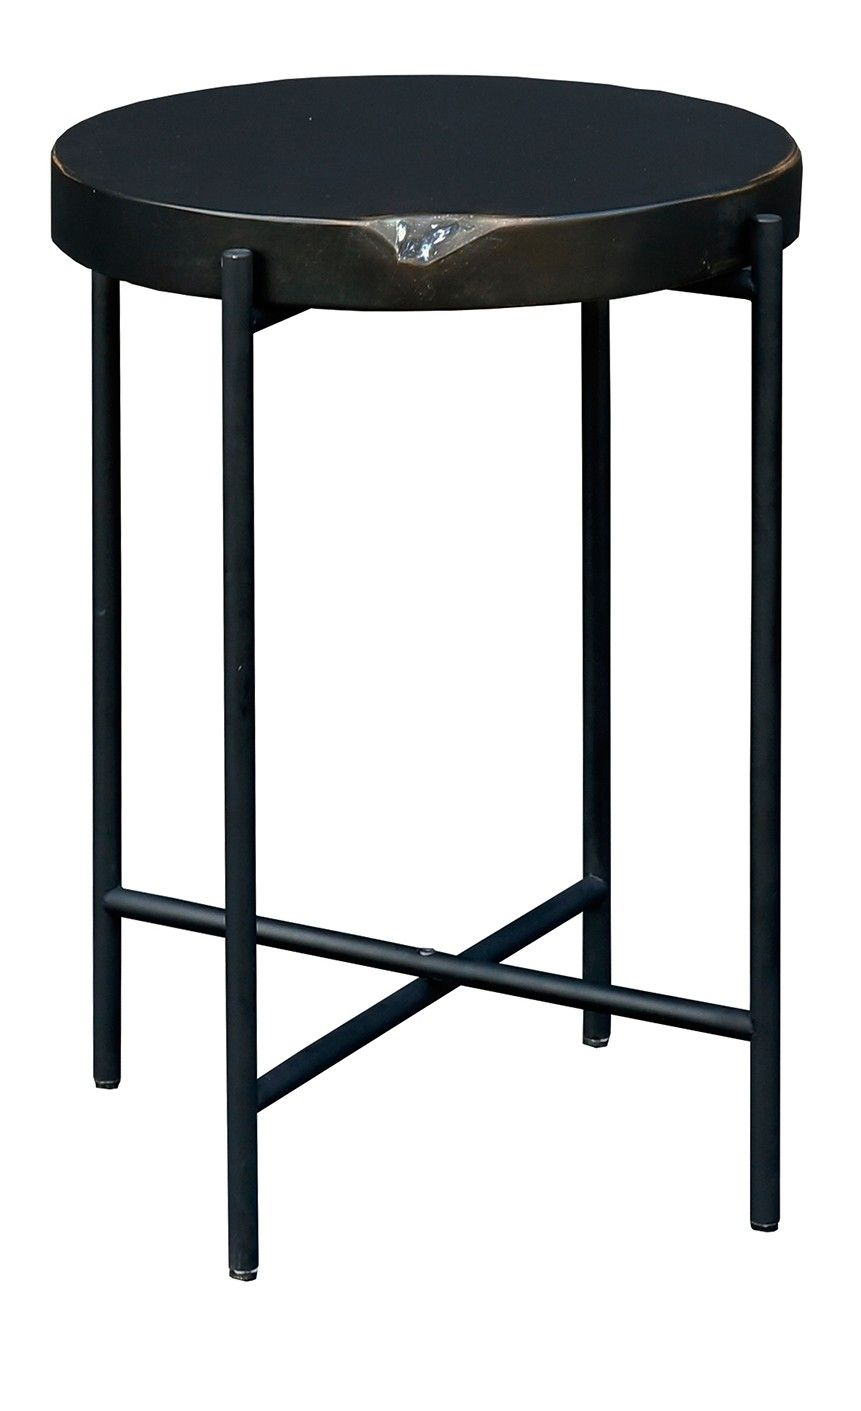 Natural Teak Gets A Modern Upgrade With A Matte Finish And Black Metal Legs Giving This Small Side Table Incredible Modern S Side Table Table Small Side Table